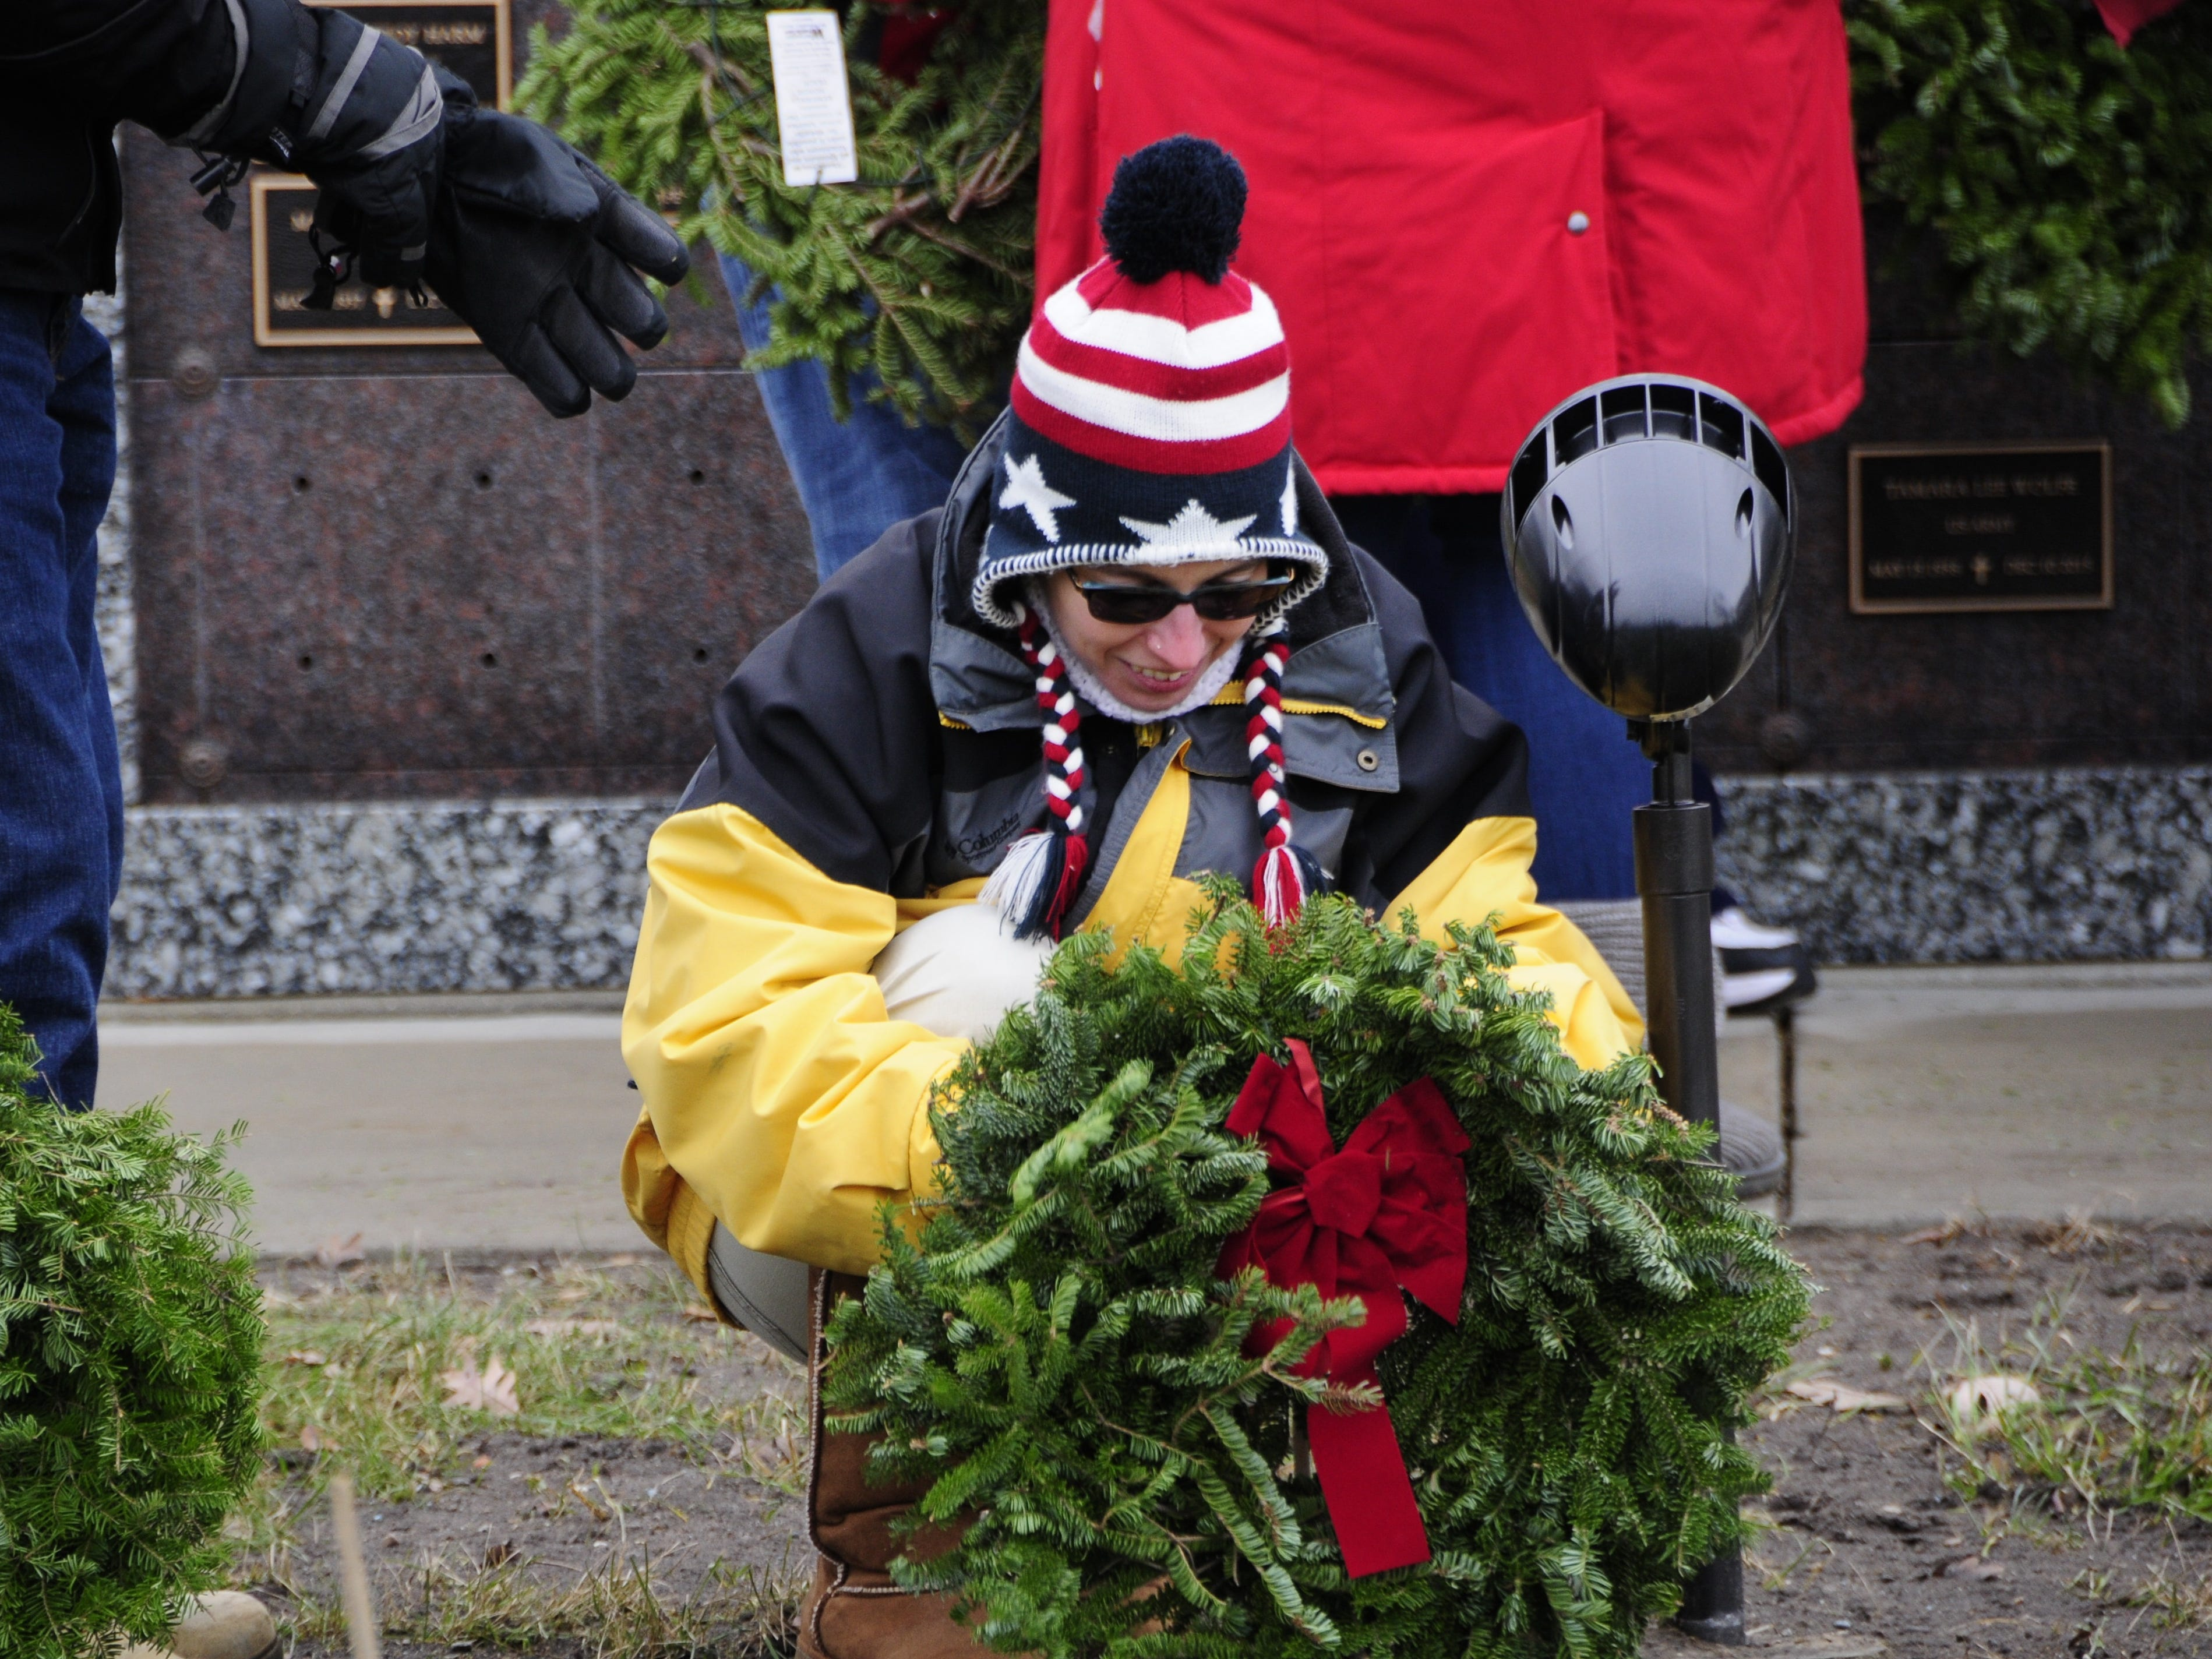 Nicole Routhier of Clyde Township places a wreath on a grave during the Wreaths Across America event on Saturday, Dec. 15, 2018 at the St. Clair County Allied Veterans Cemetery.